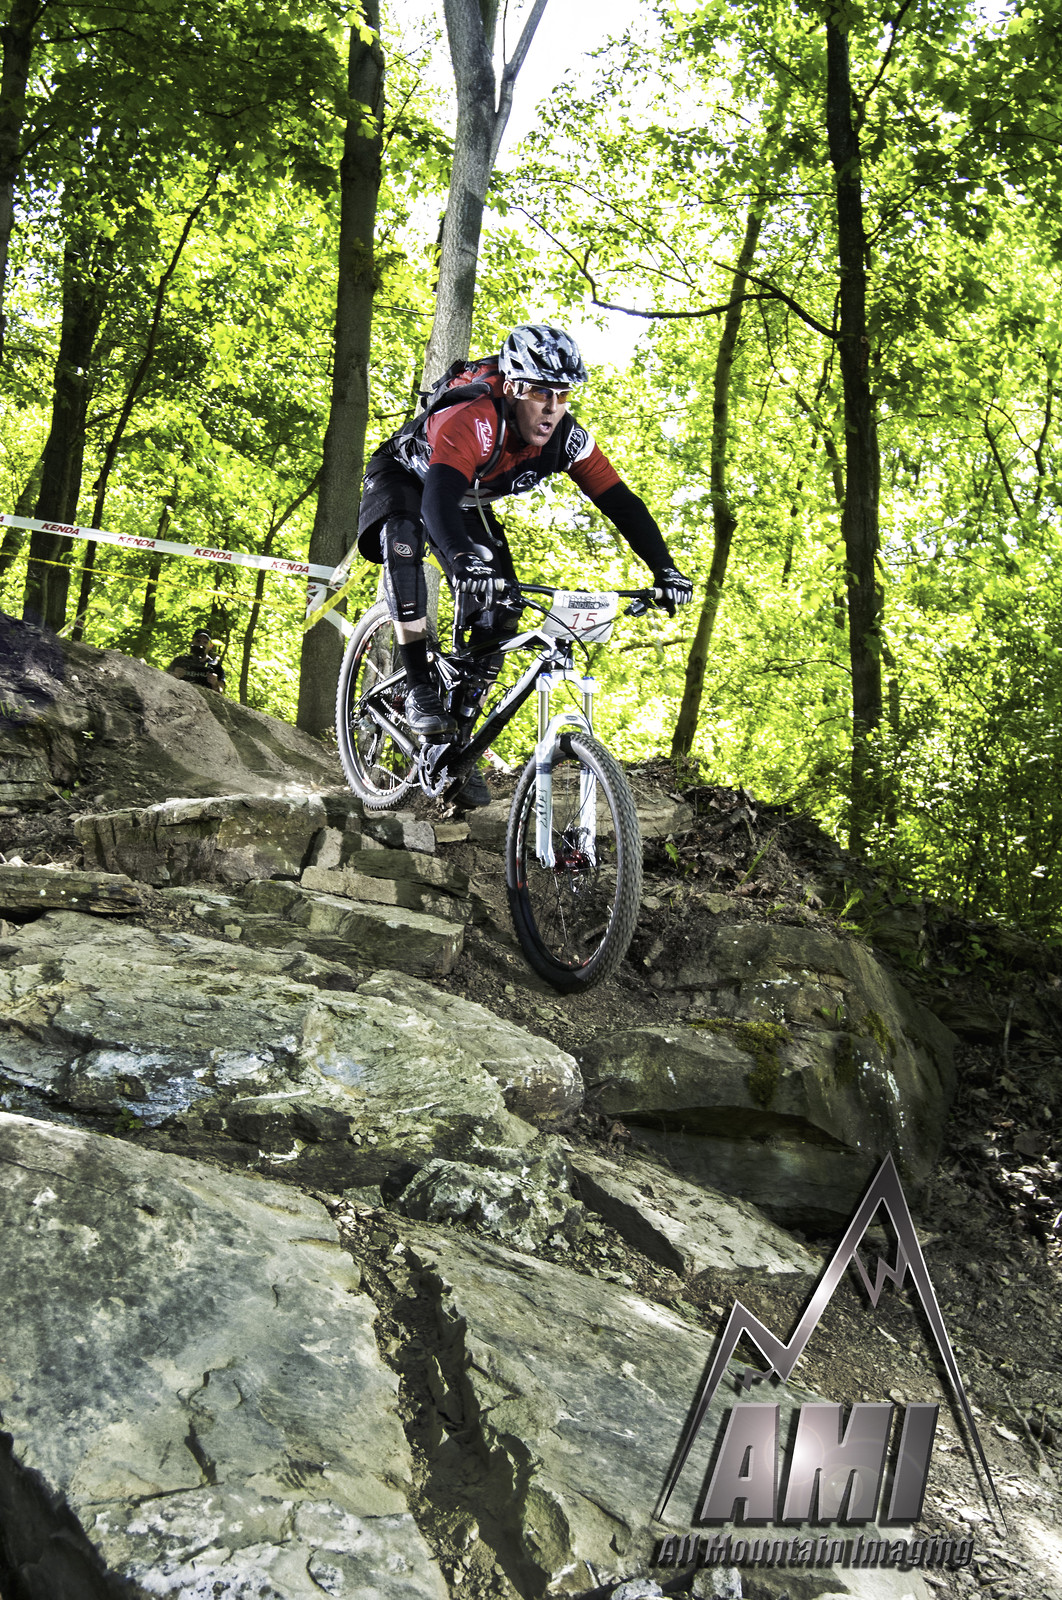 Mayhem A 010 - AllMountainImaging - Mountain Biking Pictures - Vital MTB